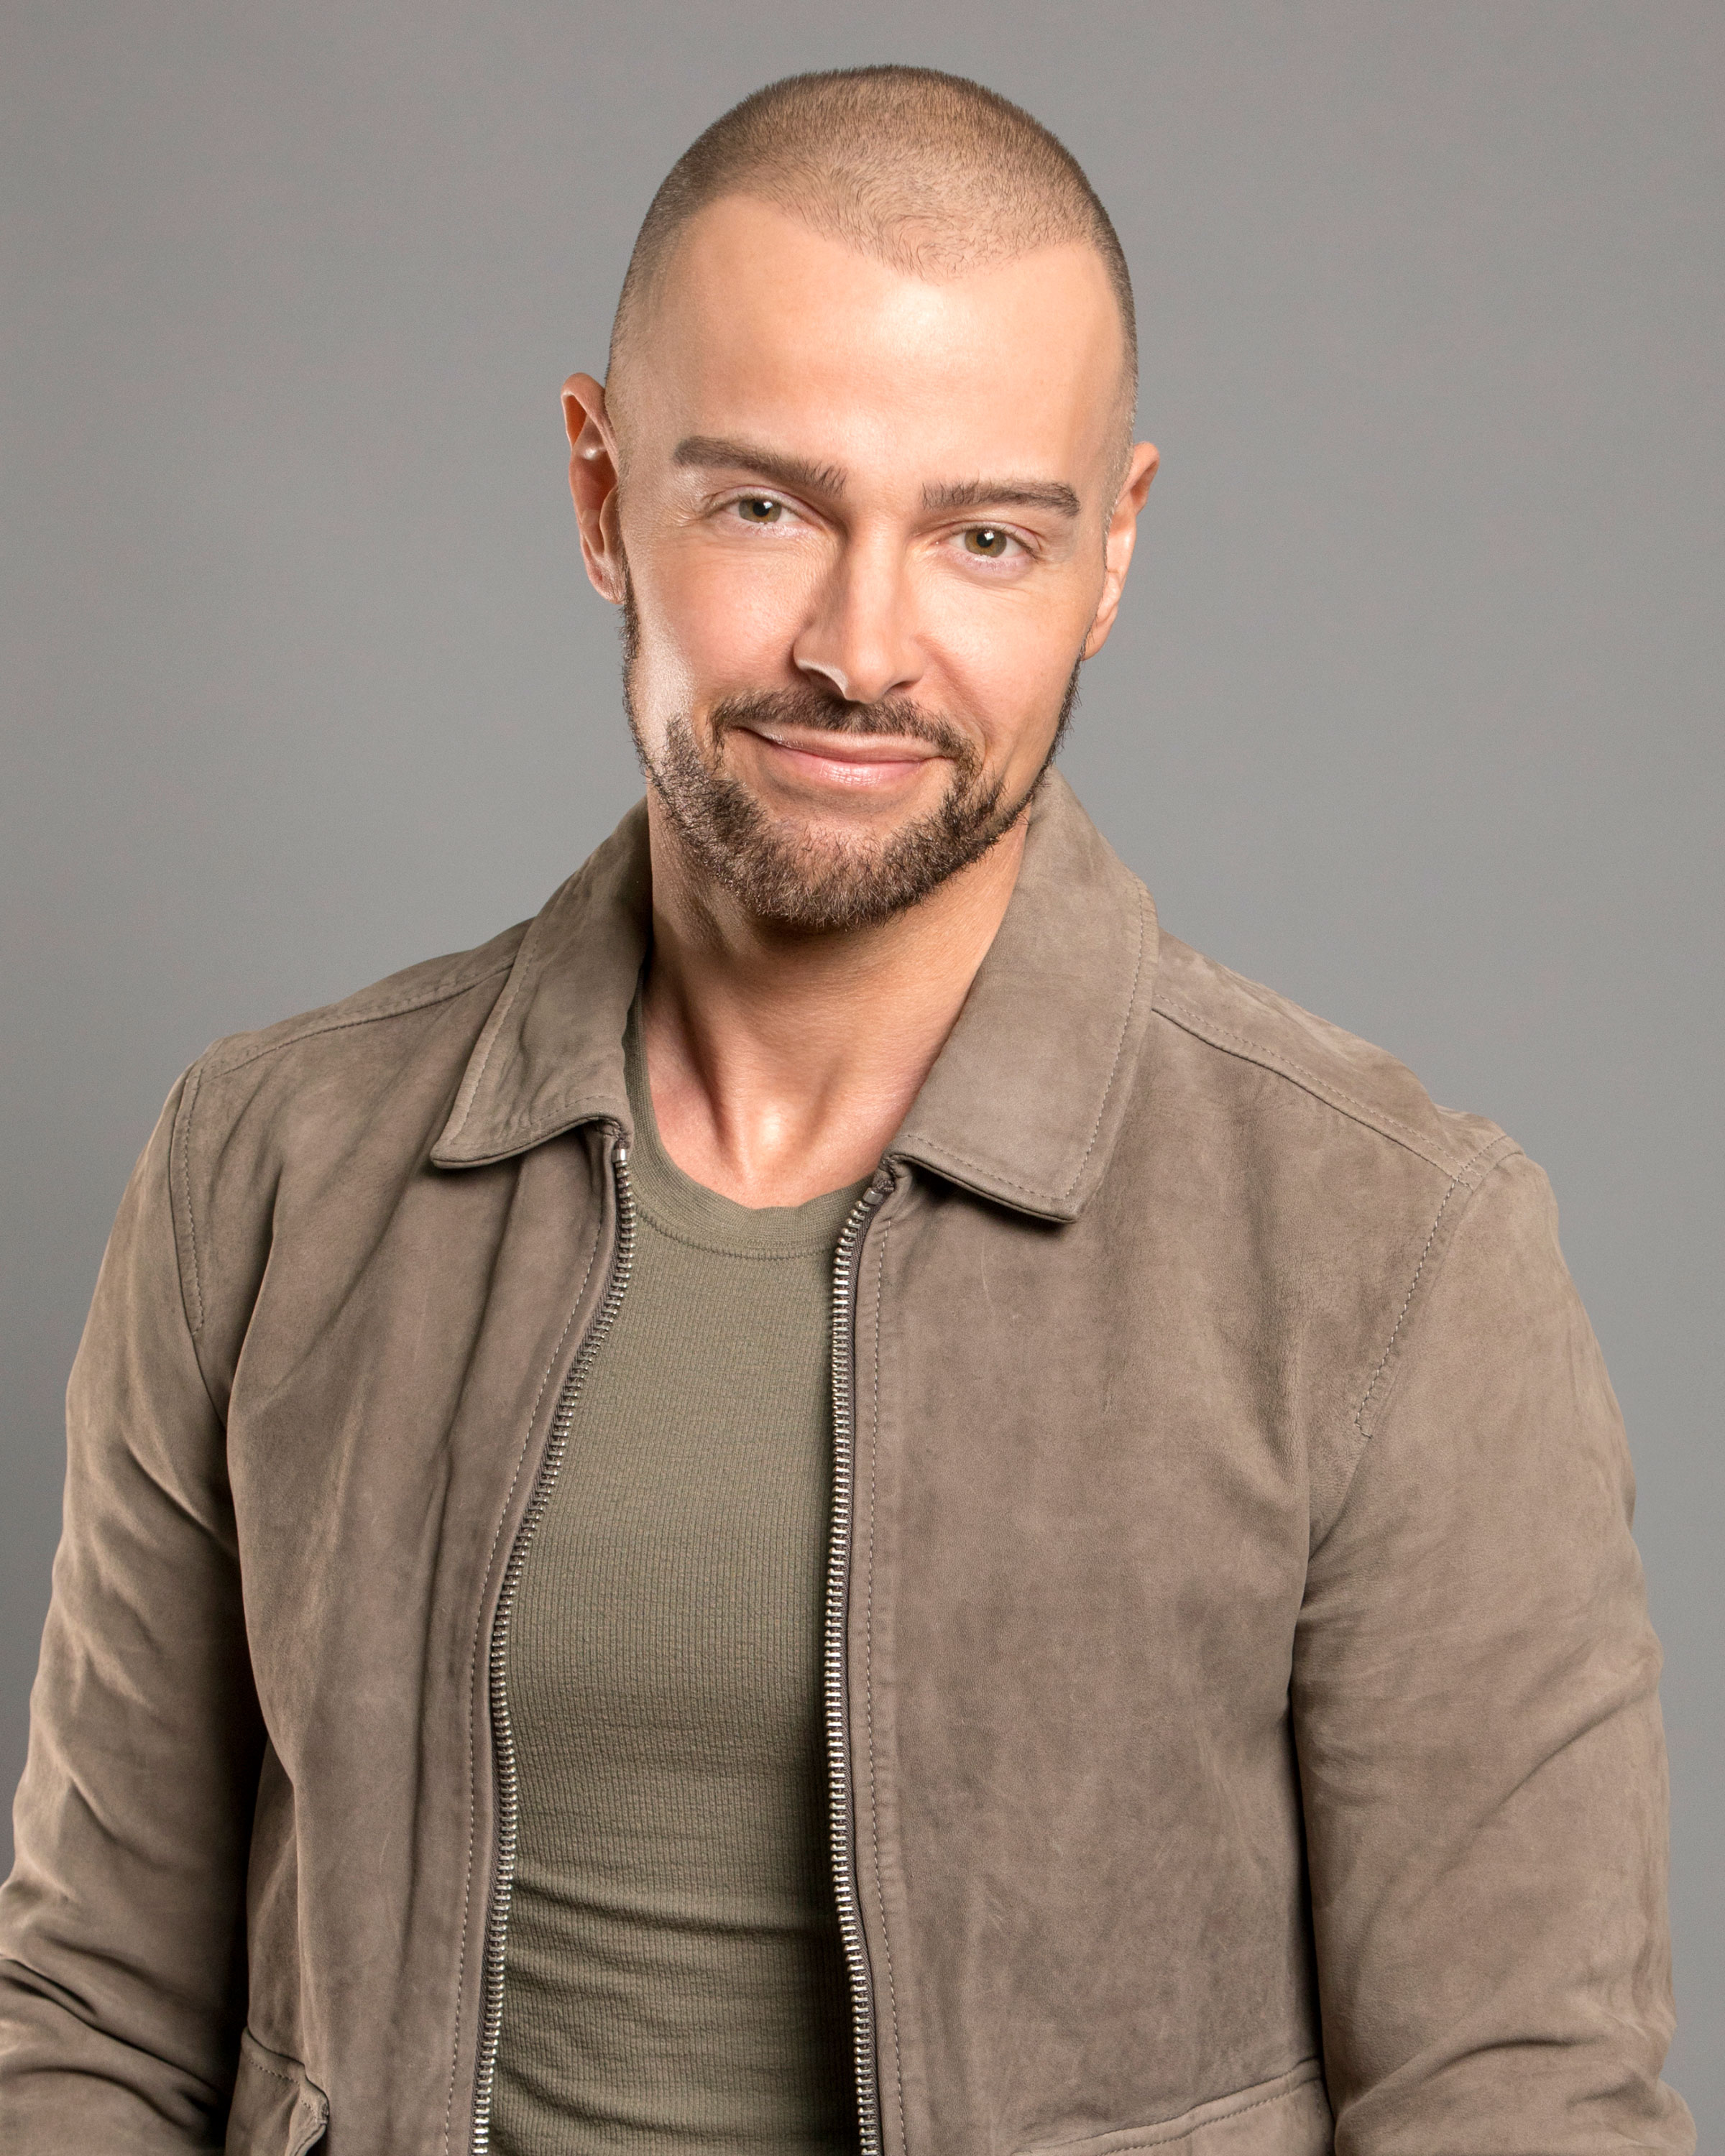 BIG-BROTHER-CELEBRITY-EDITION-Joey Lawrence - The 42-year-old actor is best known for his roles in Blossom , Brotherly Love and Melissa & Joey . In 2016, he also competed on Dancing With the Stars .